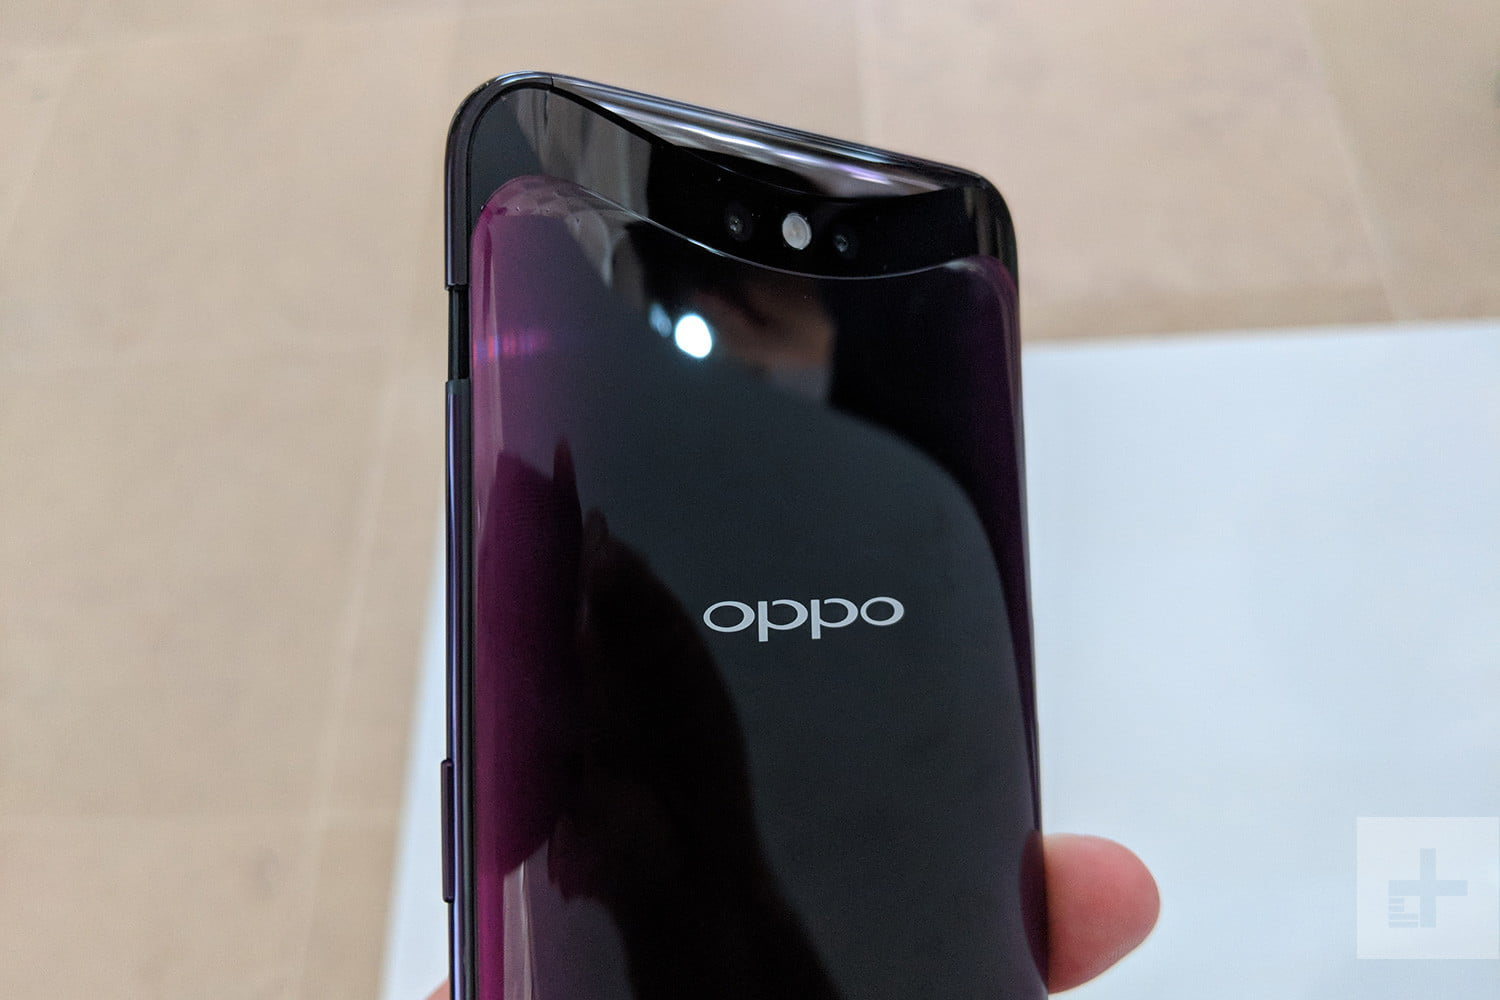 oppo-find-x-hands-on-back-upright-1500x1000